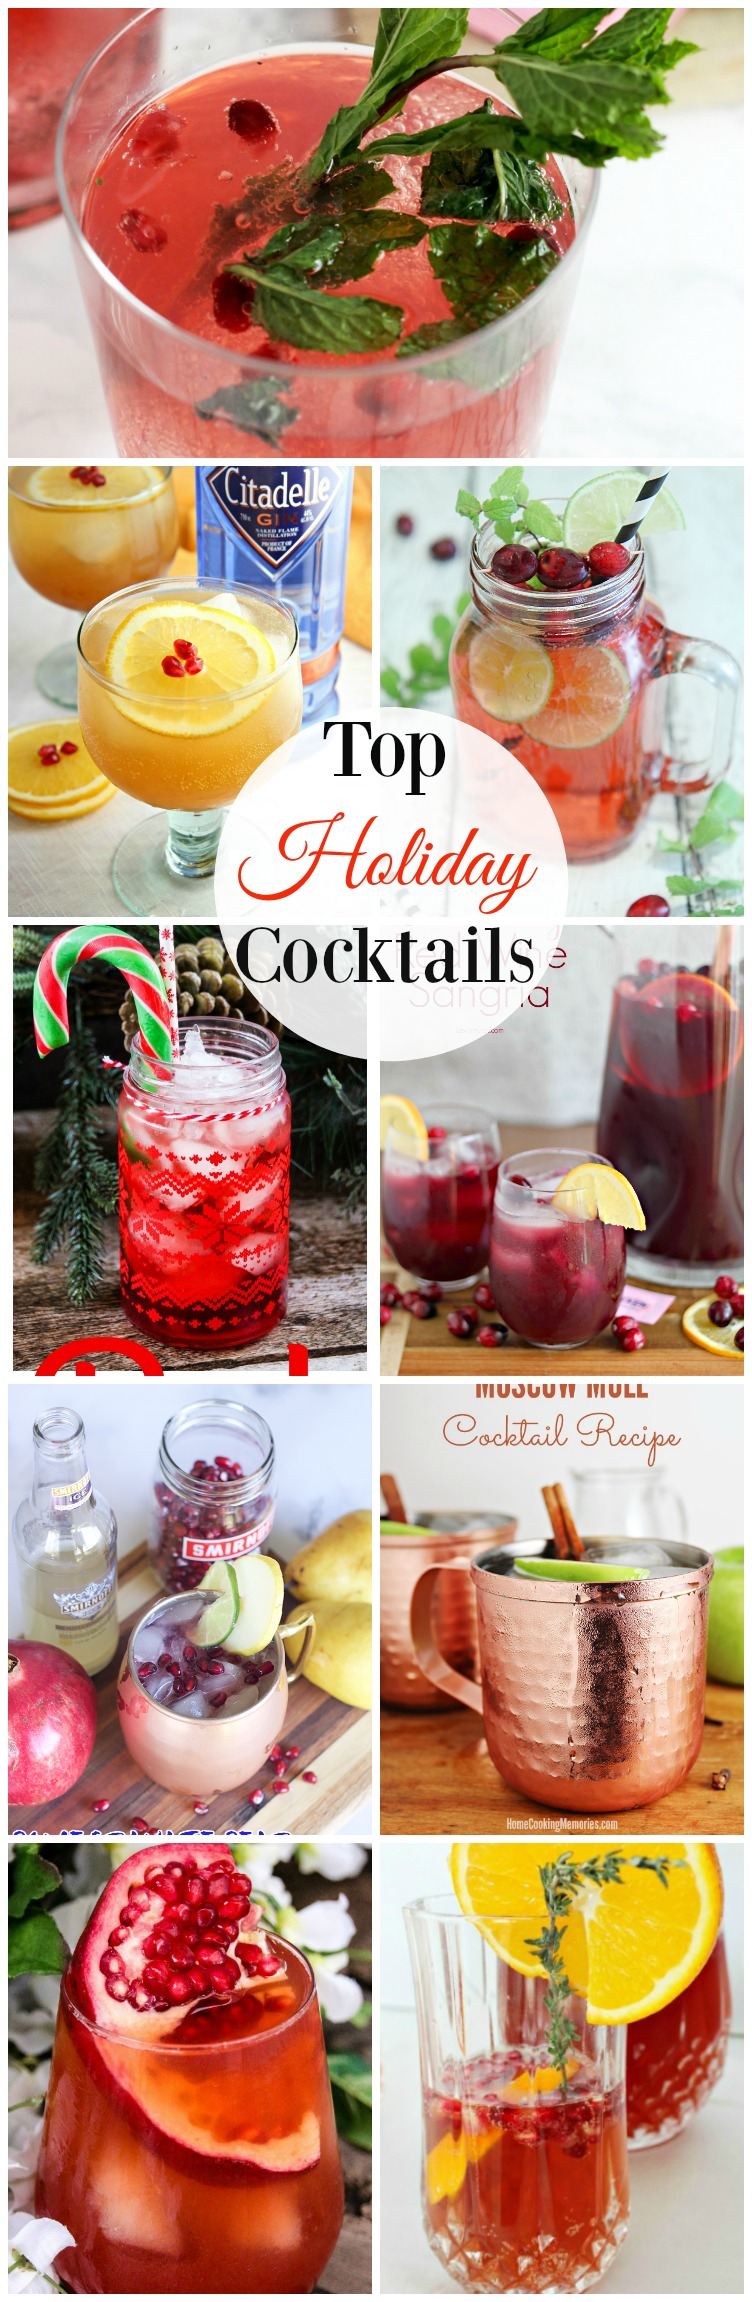 Top Holiday Cocktails perfect for every celebration.